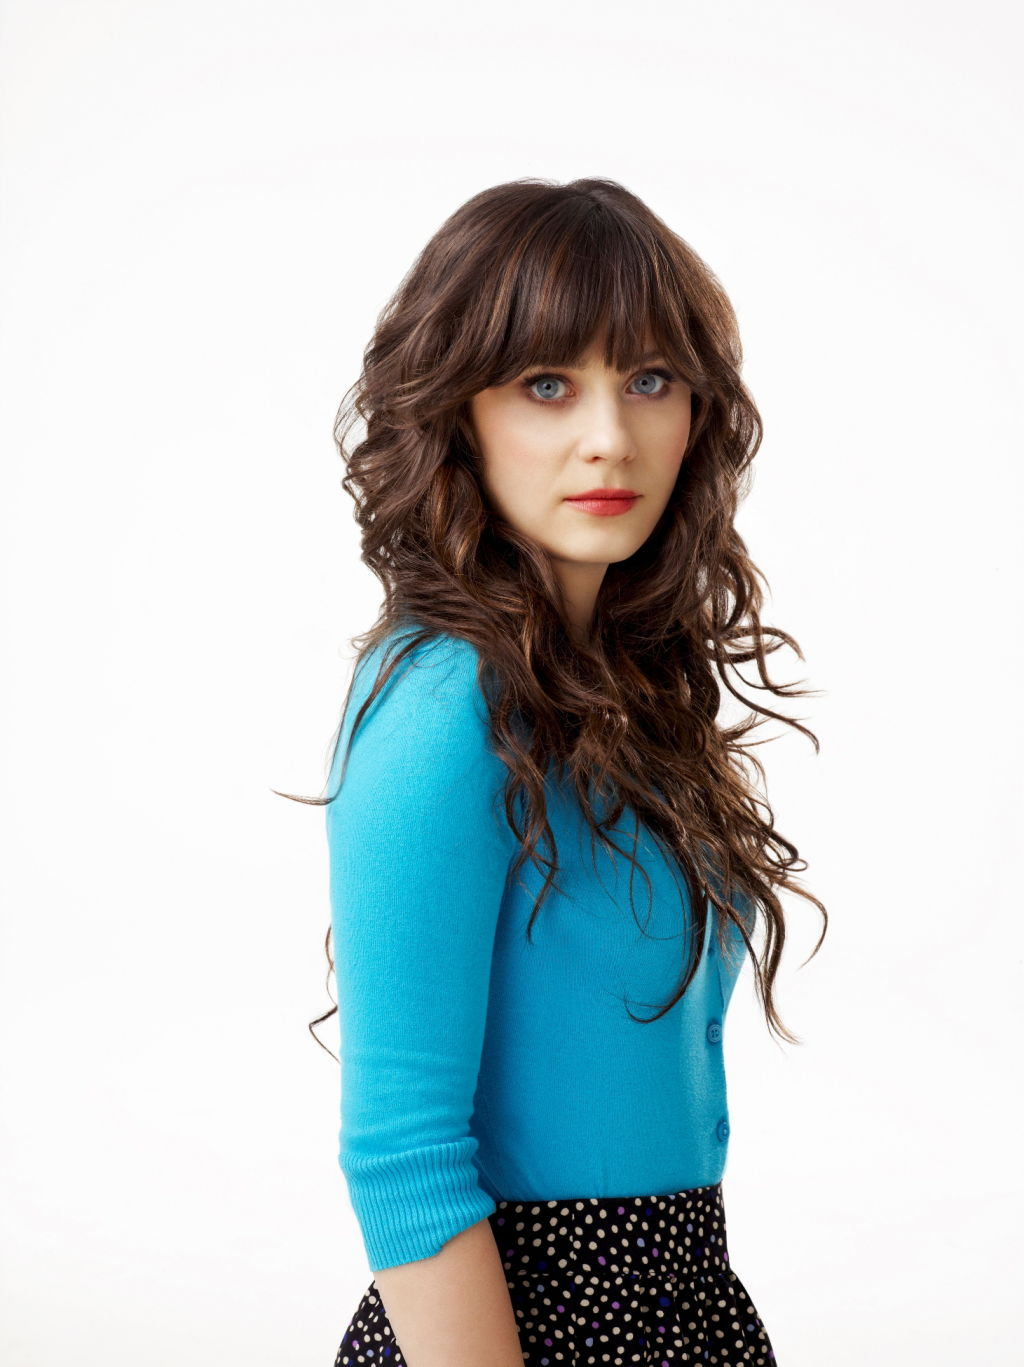 Actress Zooey Deschanel.